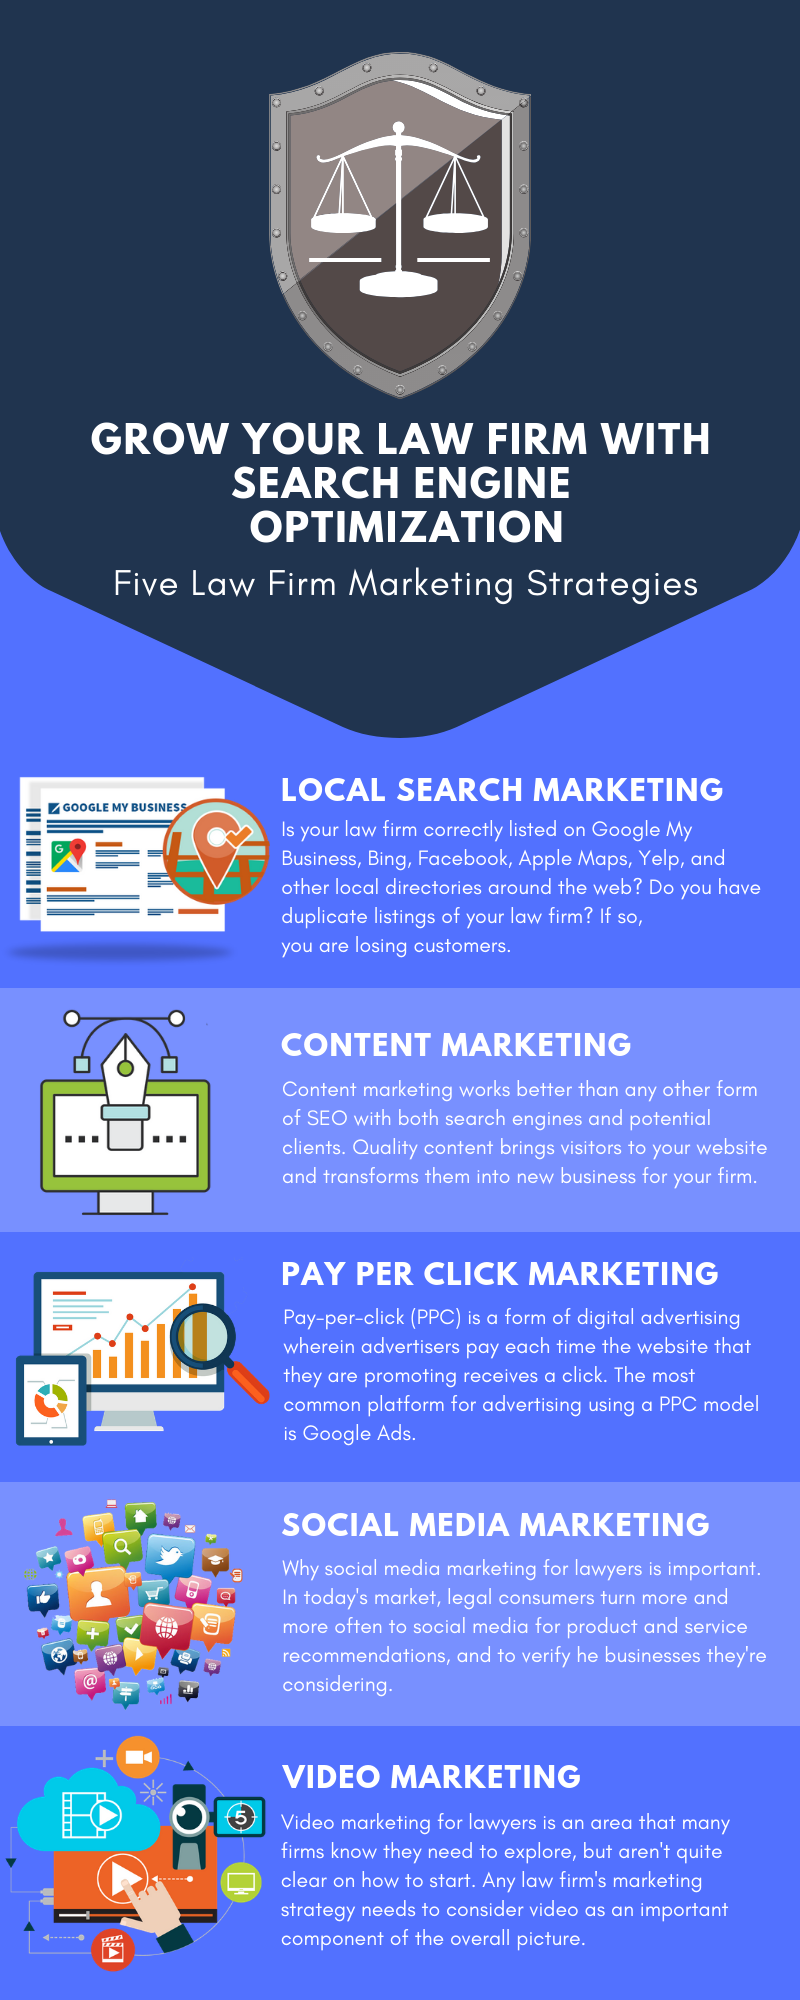 Grow Your Law Firm With Search Engine Optimization